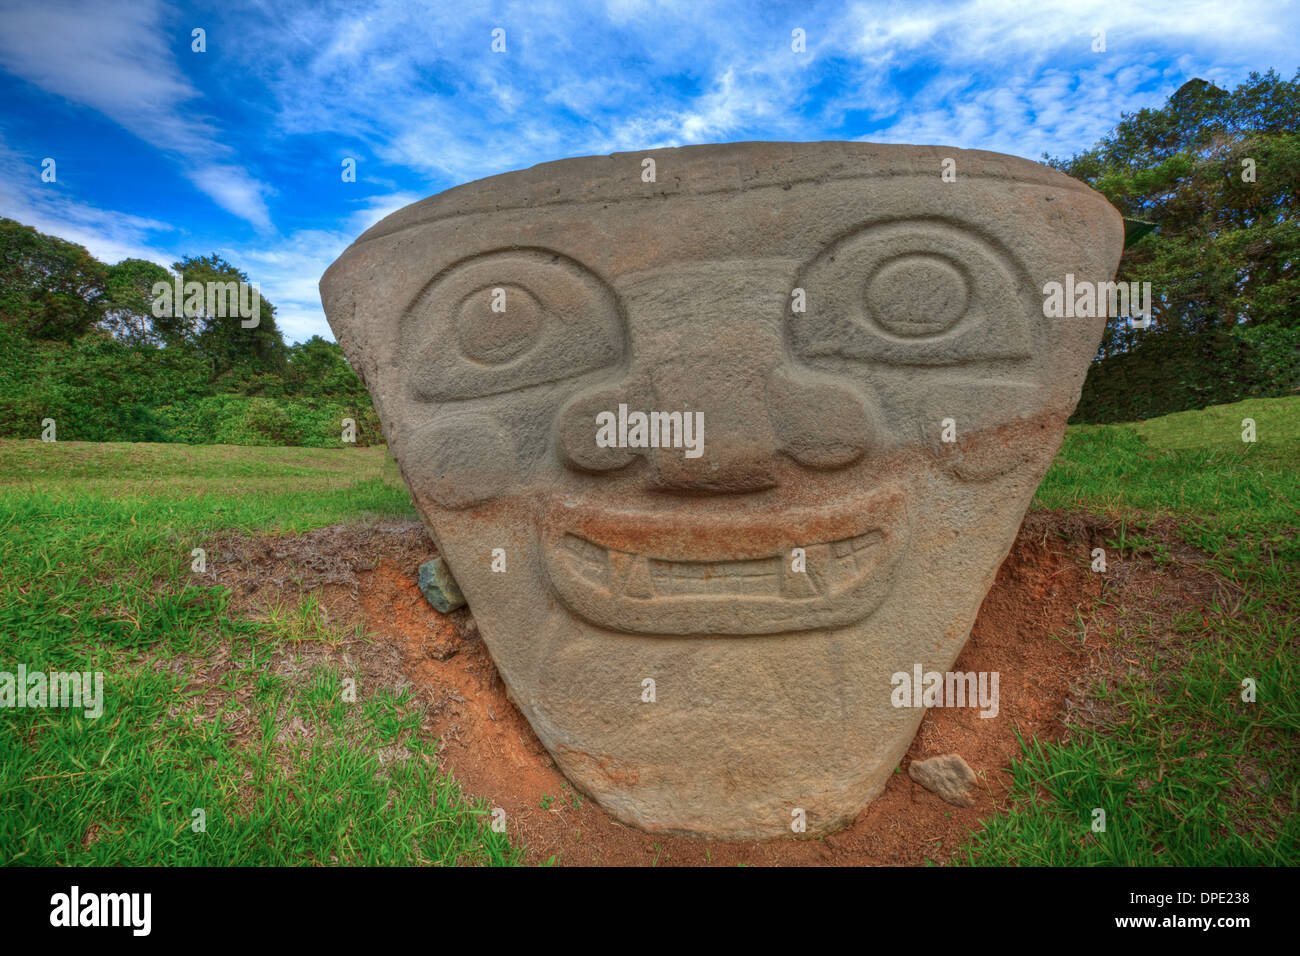 Sun God statue, San Agustin Archaeological Park, Colombia, 3000 year statues from unknown culture - Stock Image